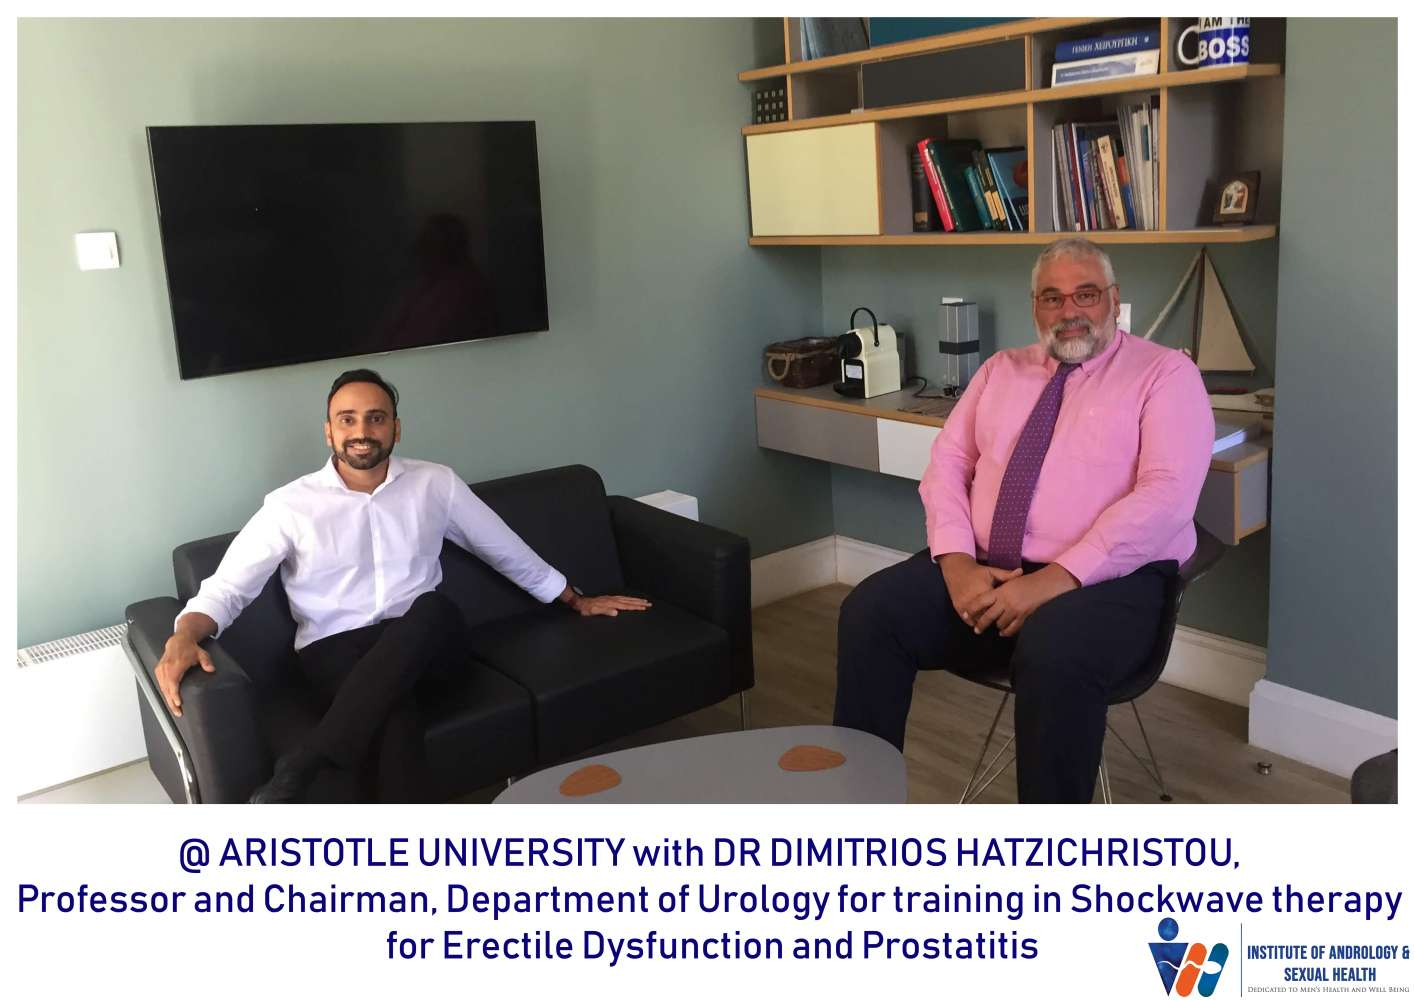 At Aristotle University with Dr Dimitrios Hatzichristou, Professor and Chairman, Department of urology for training in Shockwave therapy for Erectile Dysfunction and Prostatitis